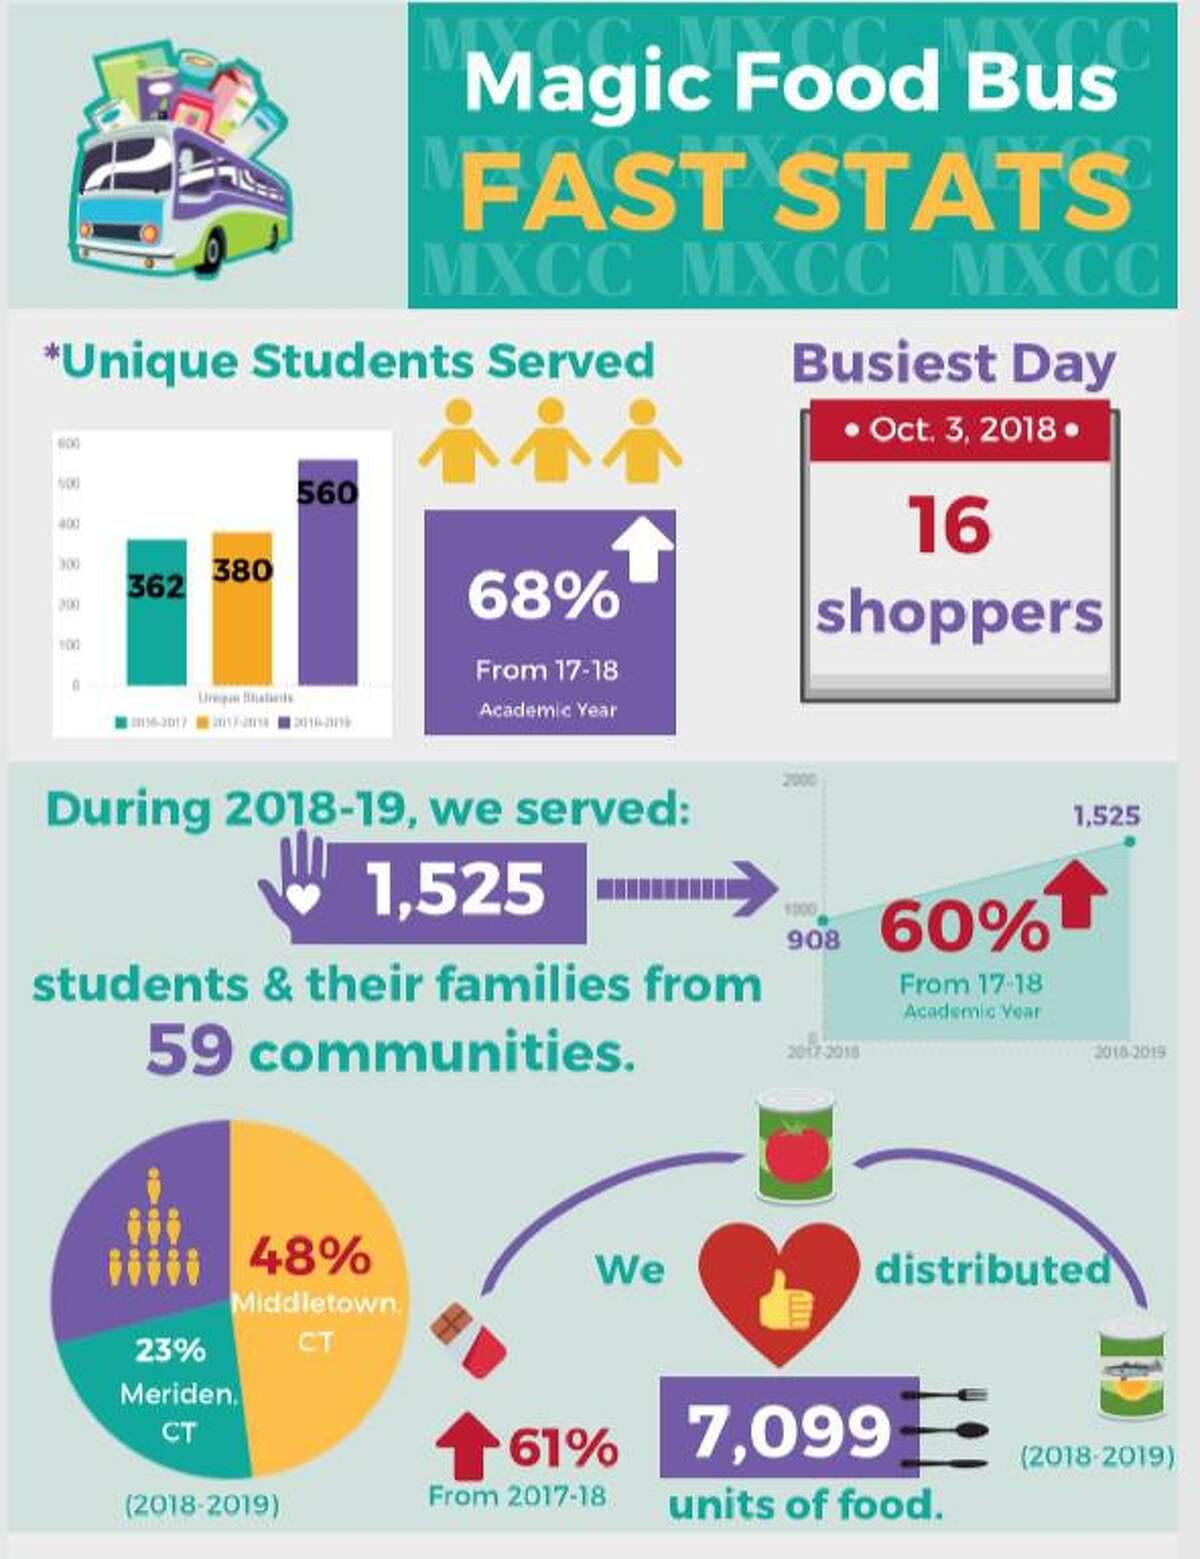 Statistics compiled by Trenton Wright centering on Middlesex Community College's Magic Food Bus show many things. This year, student use is up 68 percent over 2017-18. The pantry served 1,525 students and their families from 59 communities across Connecticut, an increase of 60 percent. In all, 48 percent of those were from the Middletown location, and 23 percent from Meriden's O.H. Platt High School campus.